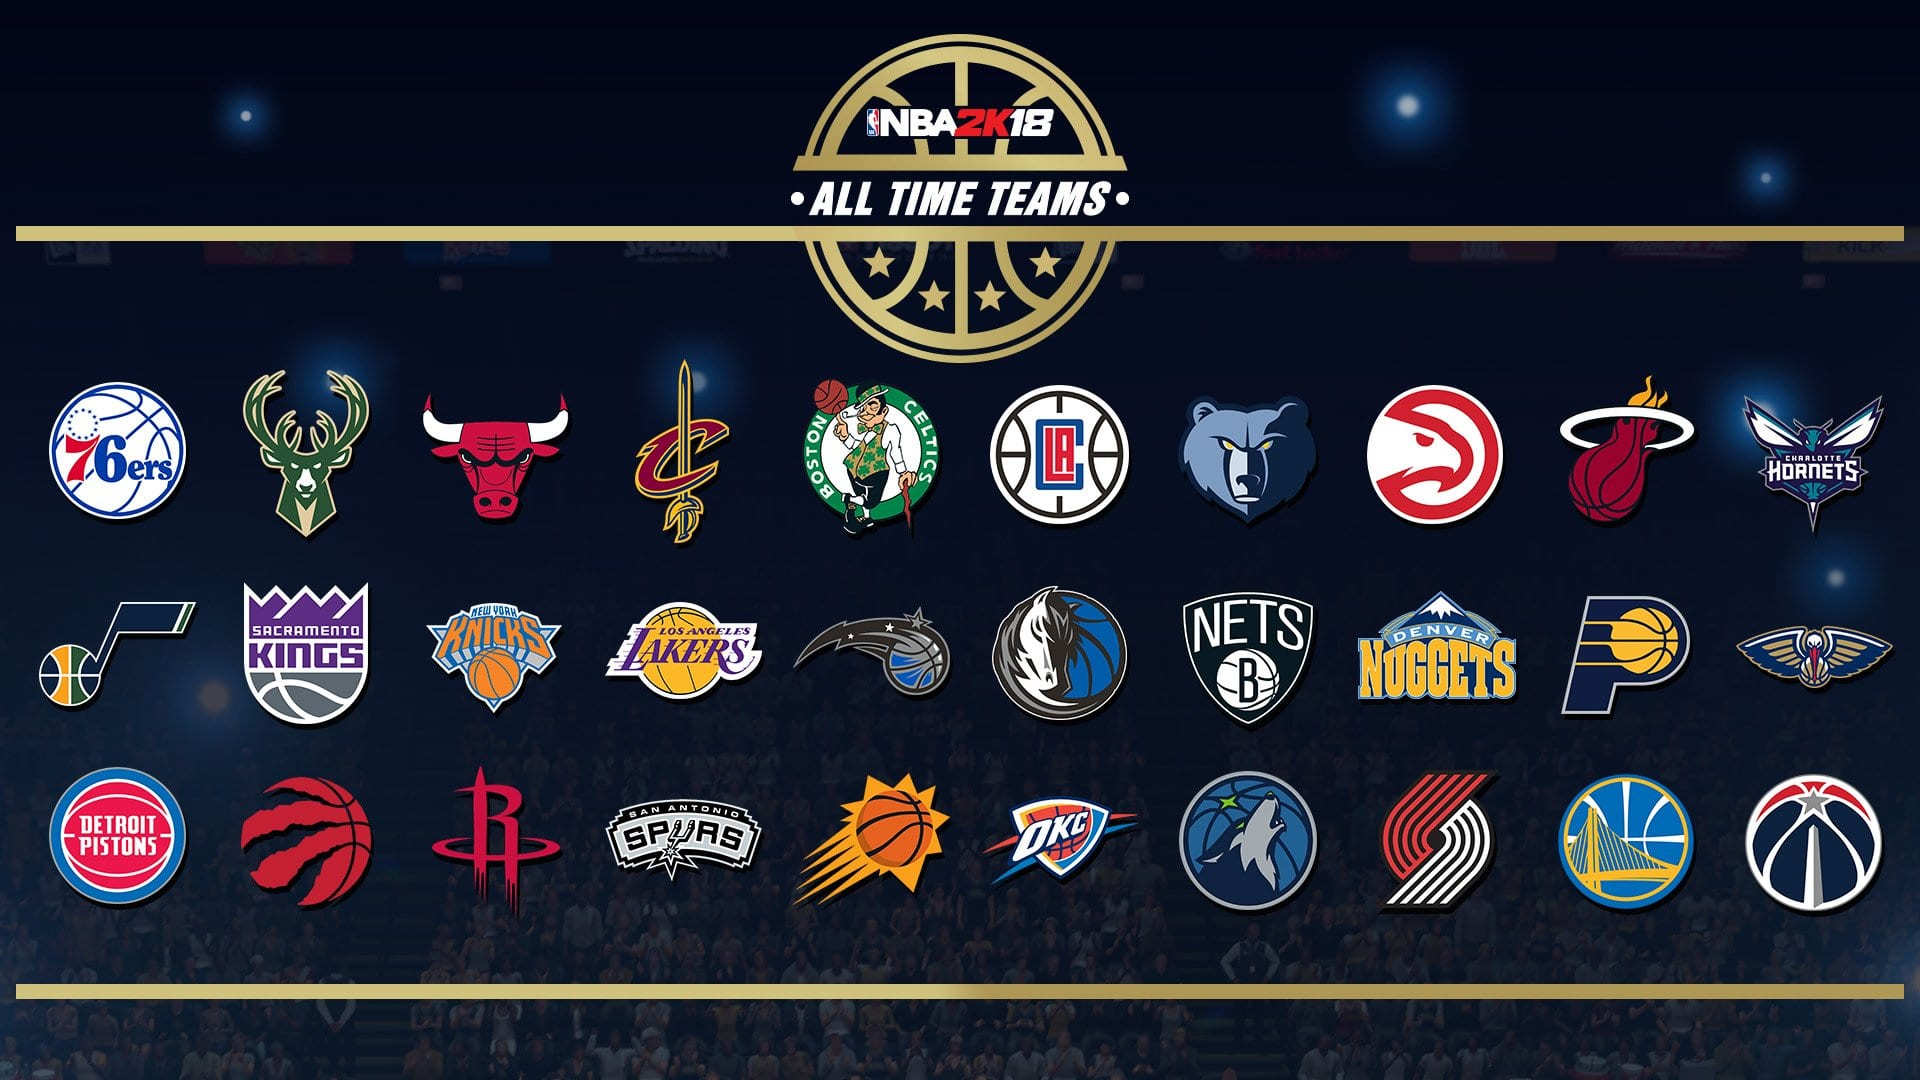 new year new nba 2k this time the developer s team surprised us with not only 16 new historic teams but also new all time teams